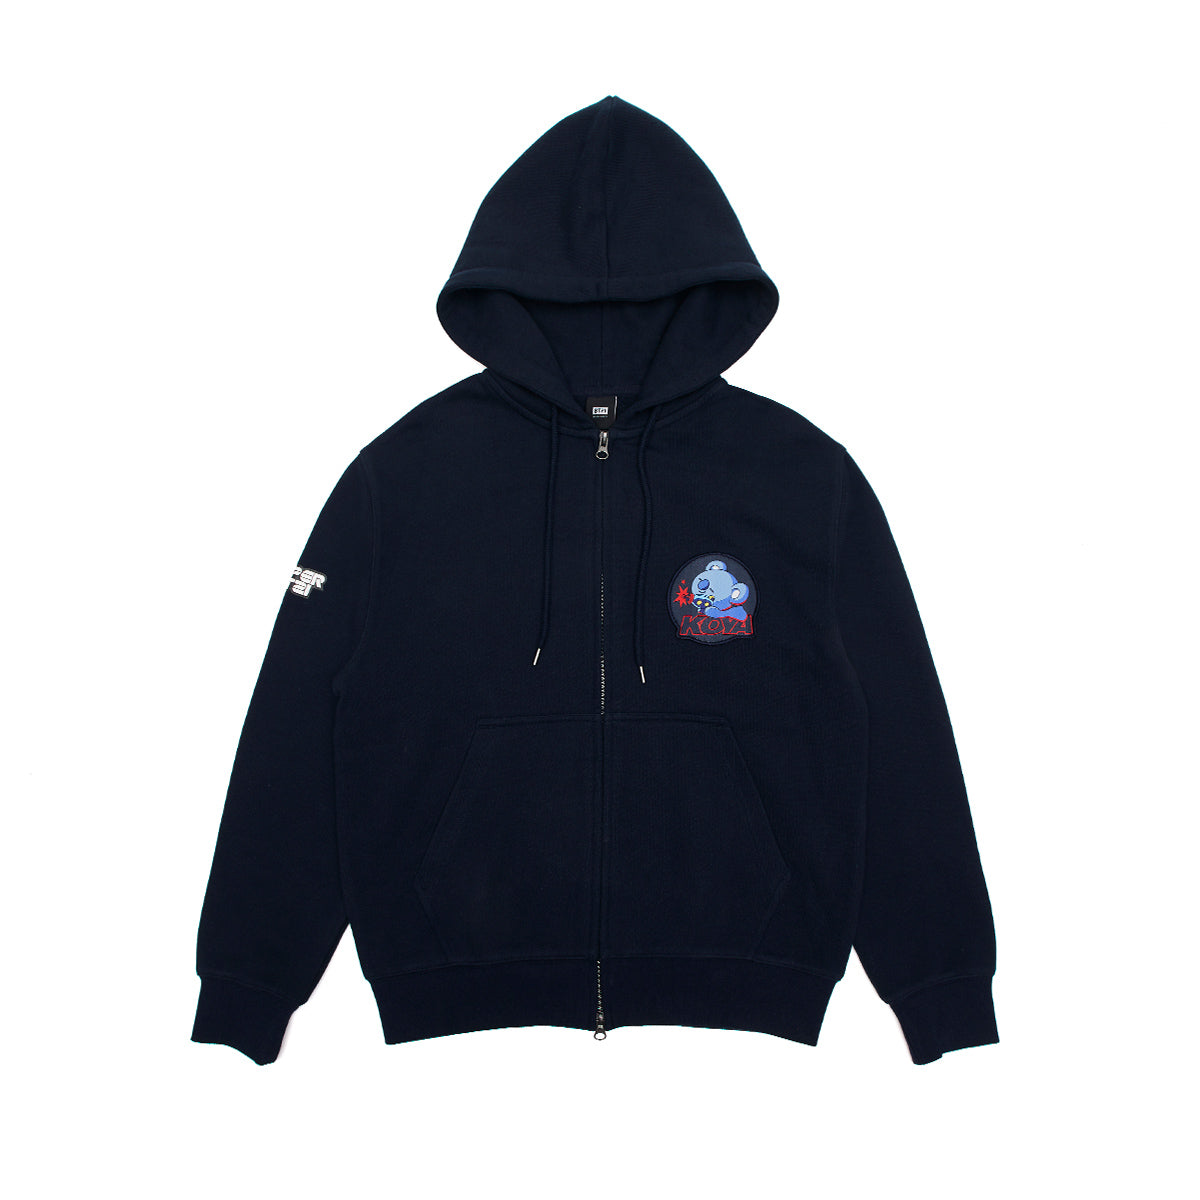 BT21 KOYA Space Squad Zip Up Hoodie